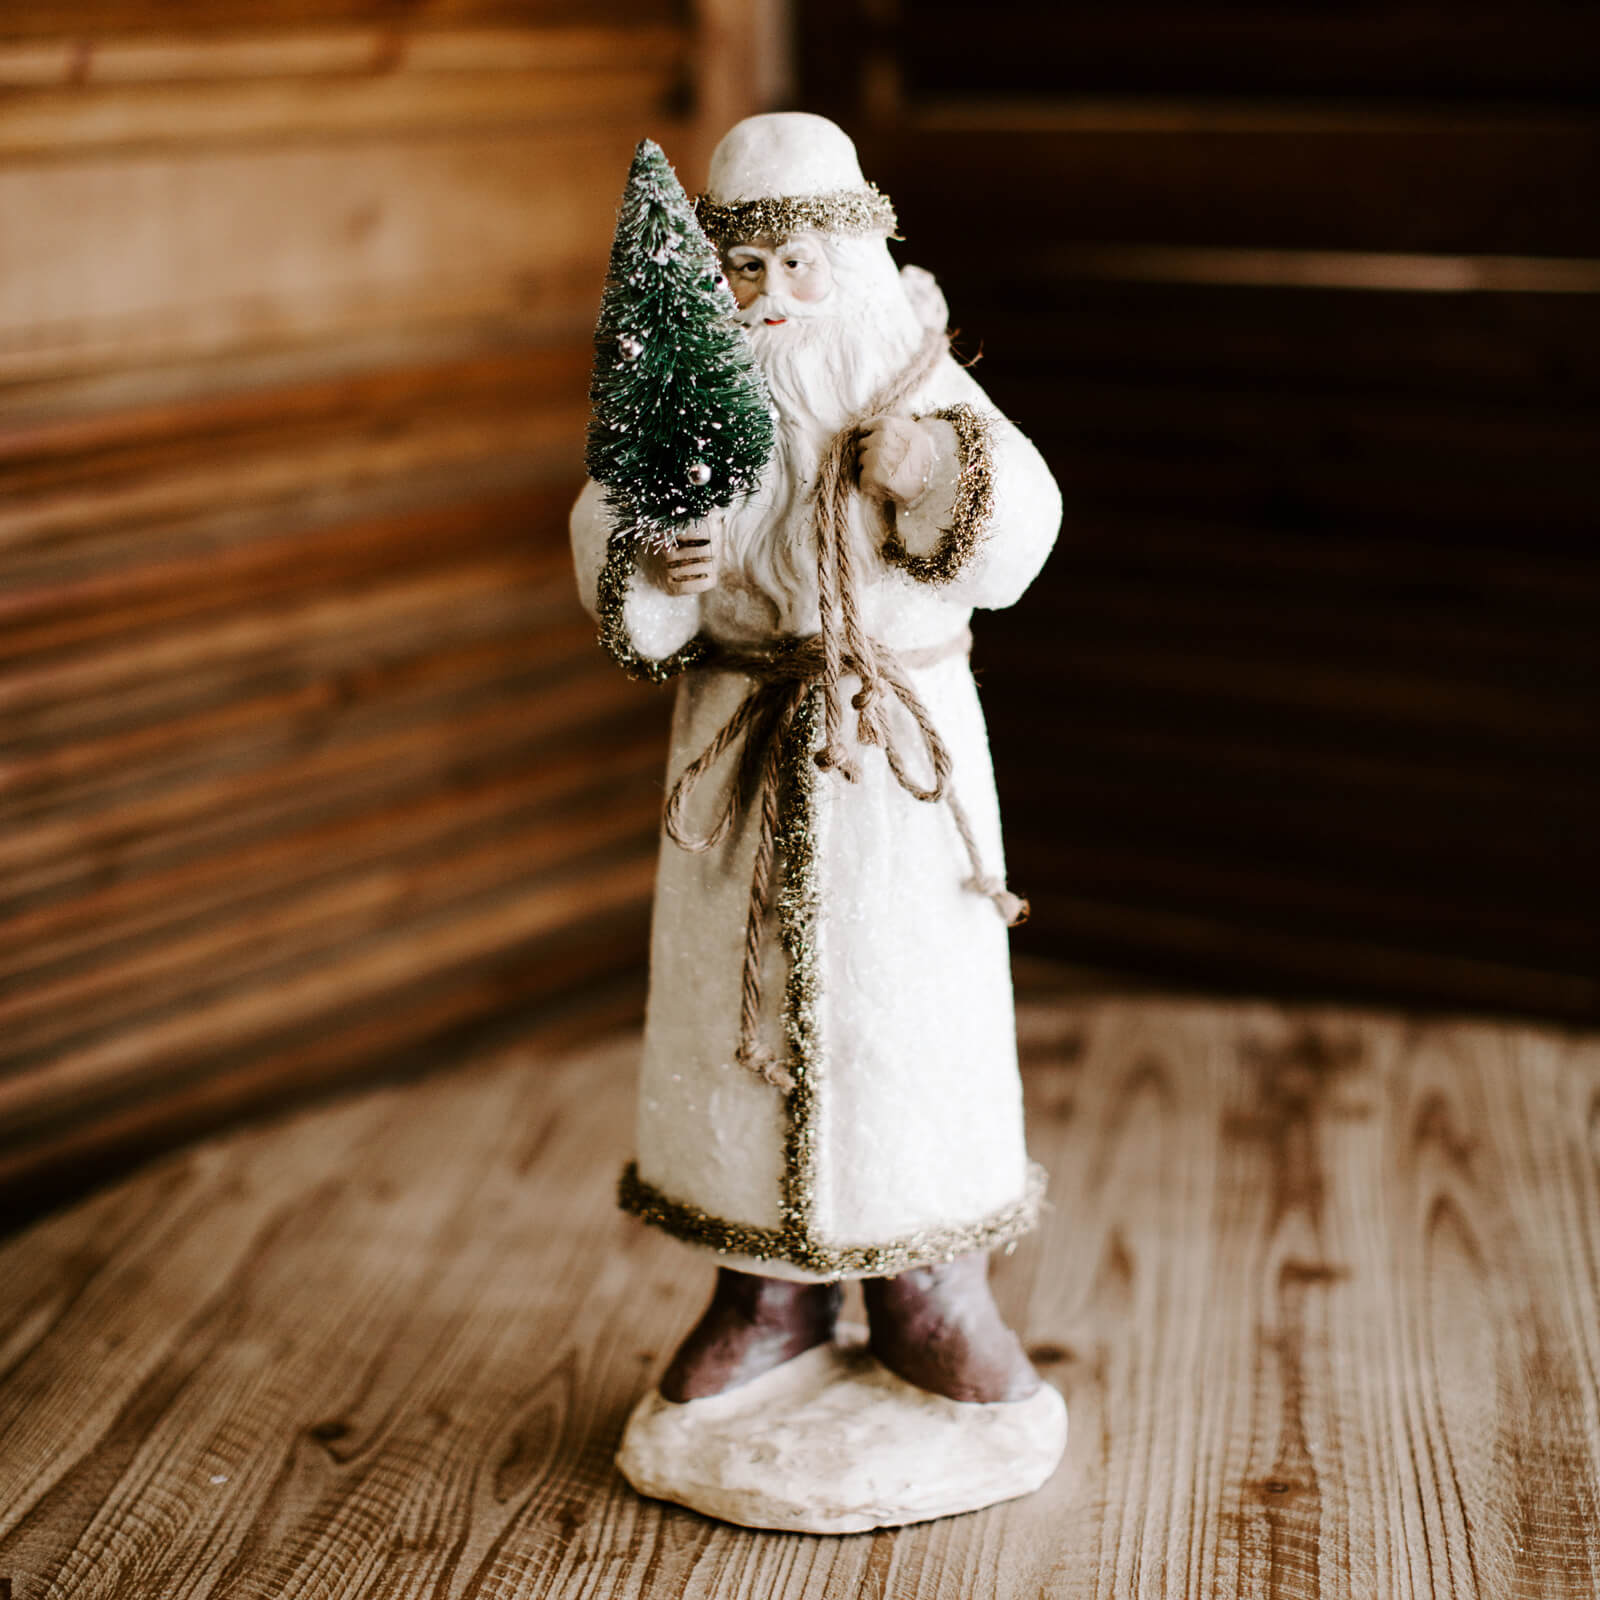 An 18 inch tall paper mâché santa figurine in a white coat with gold glittery trim, holding a small green tree, with a soft smile on his face for Christmas decorating